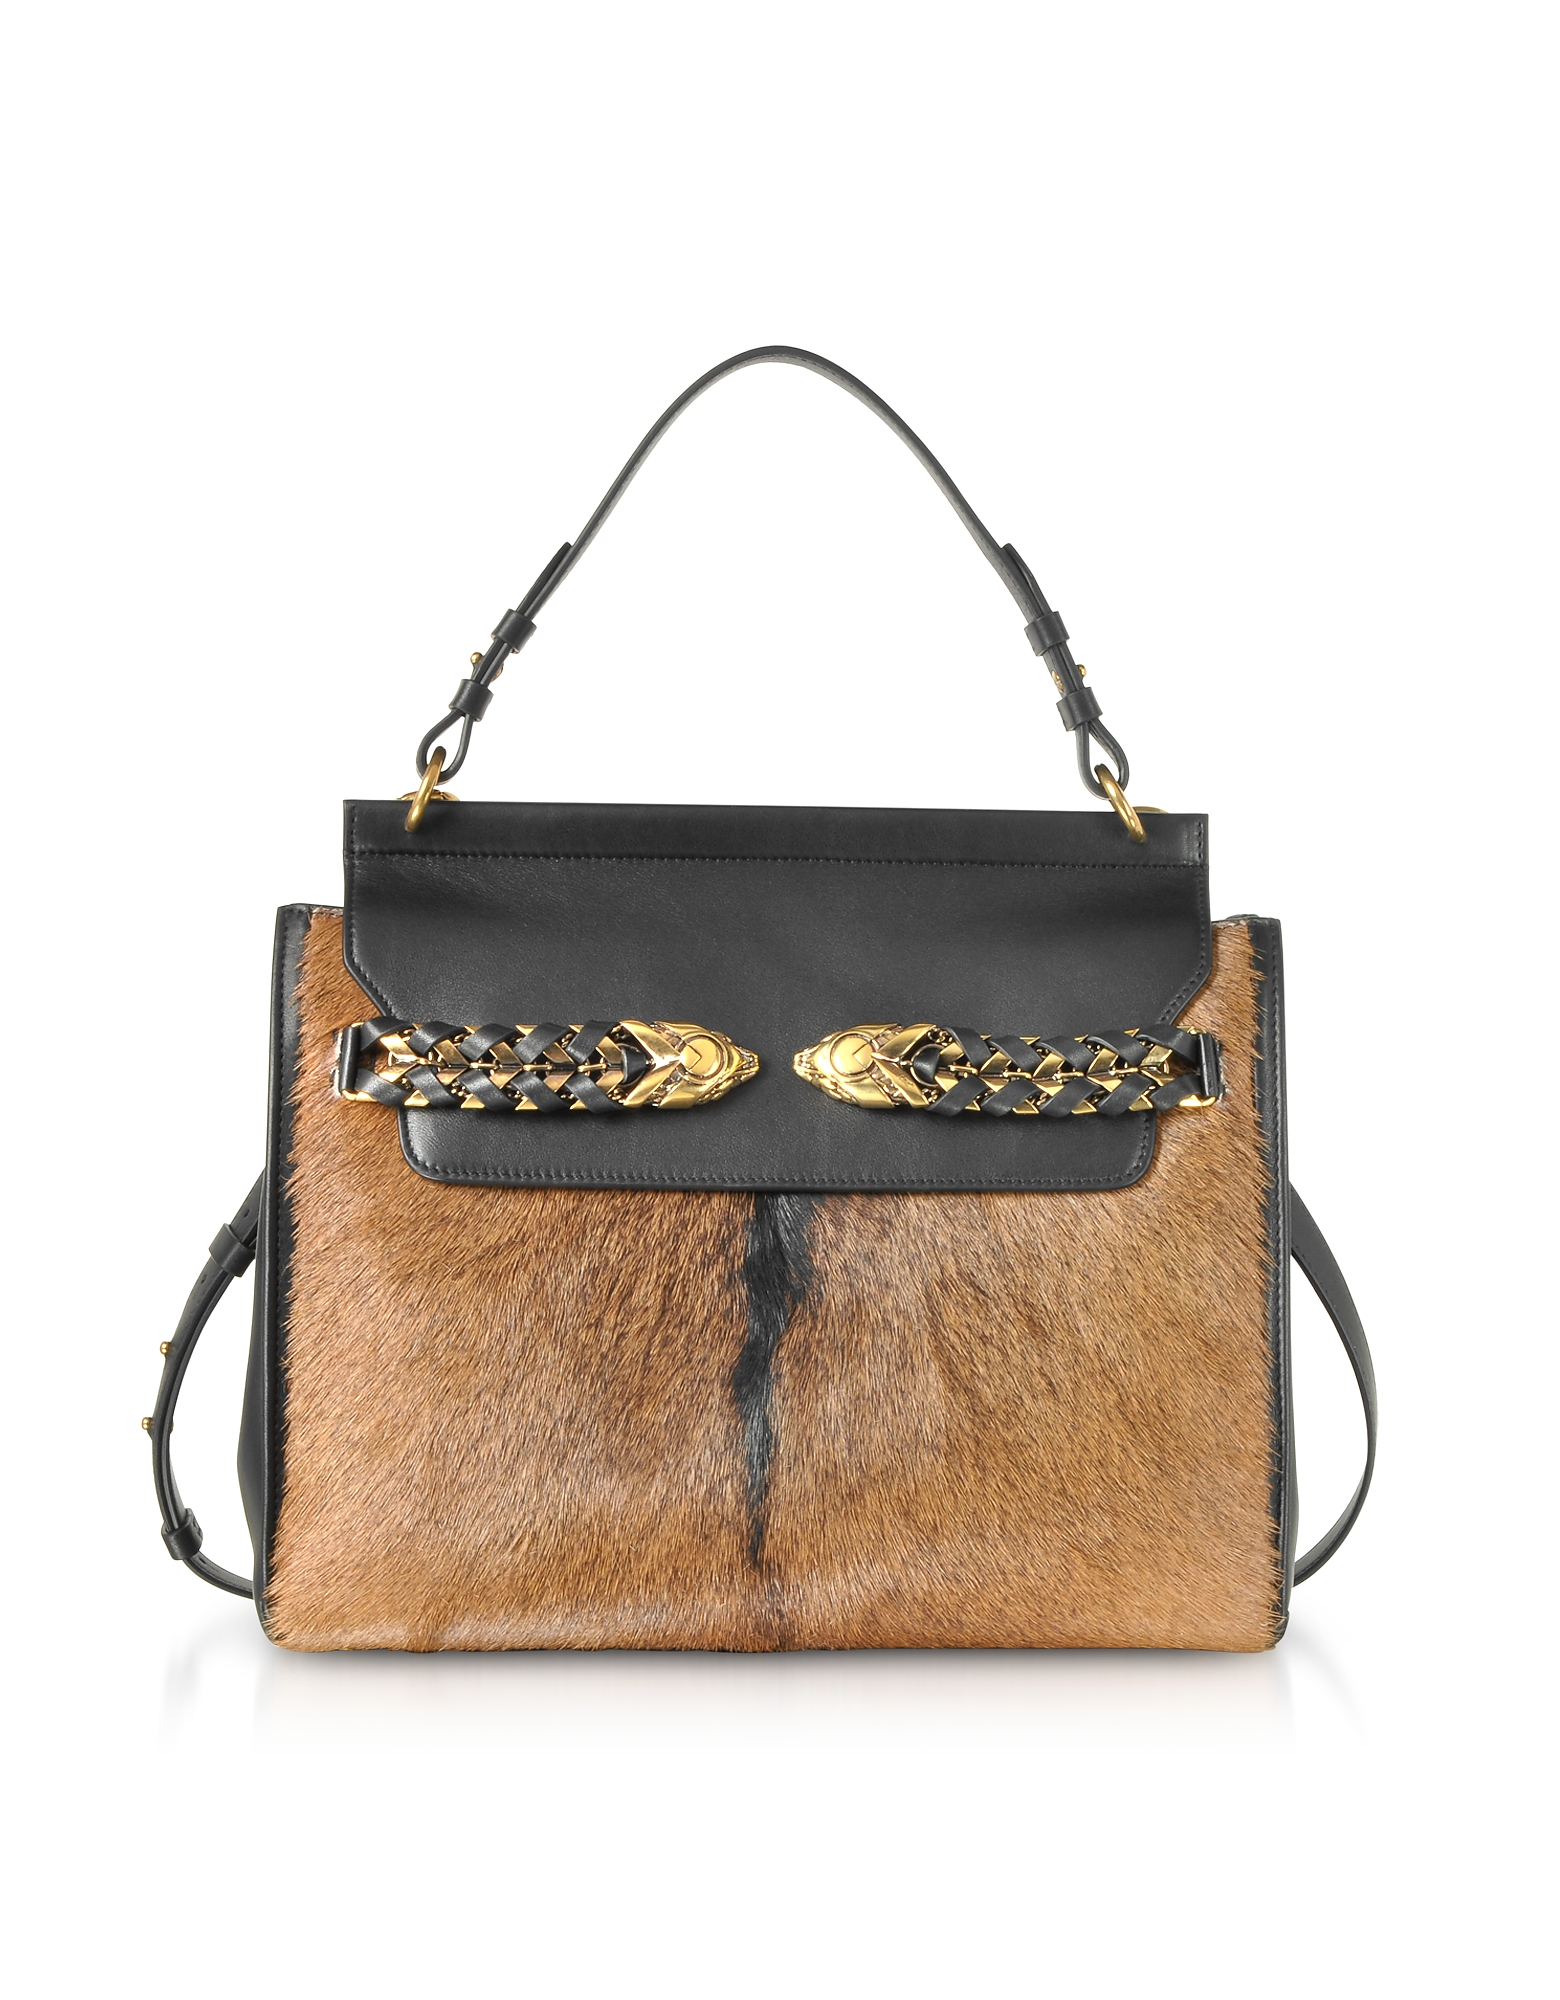 Black Leather and Natural Pony Hair Satchel Bag